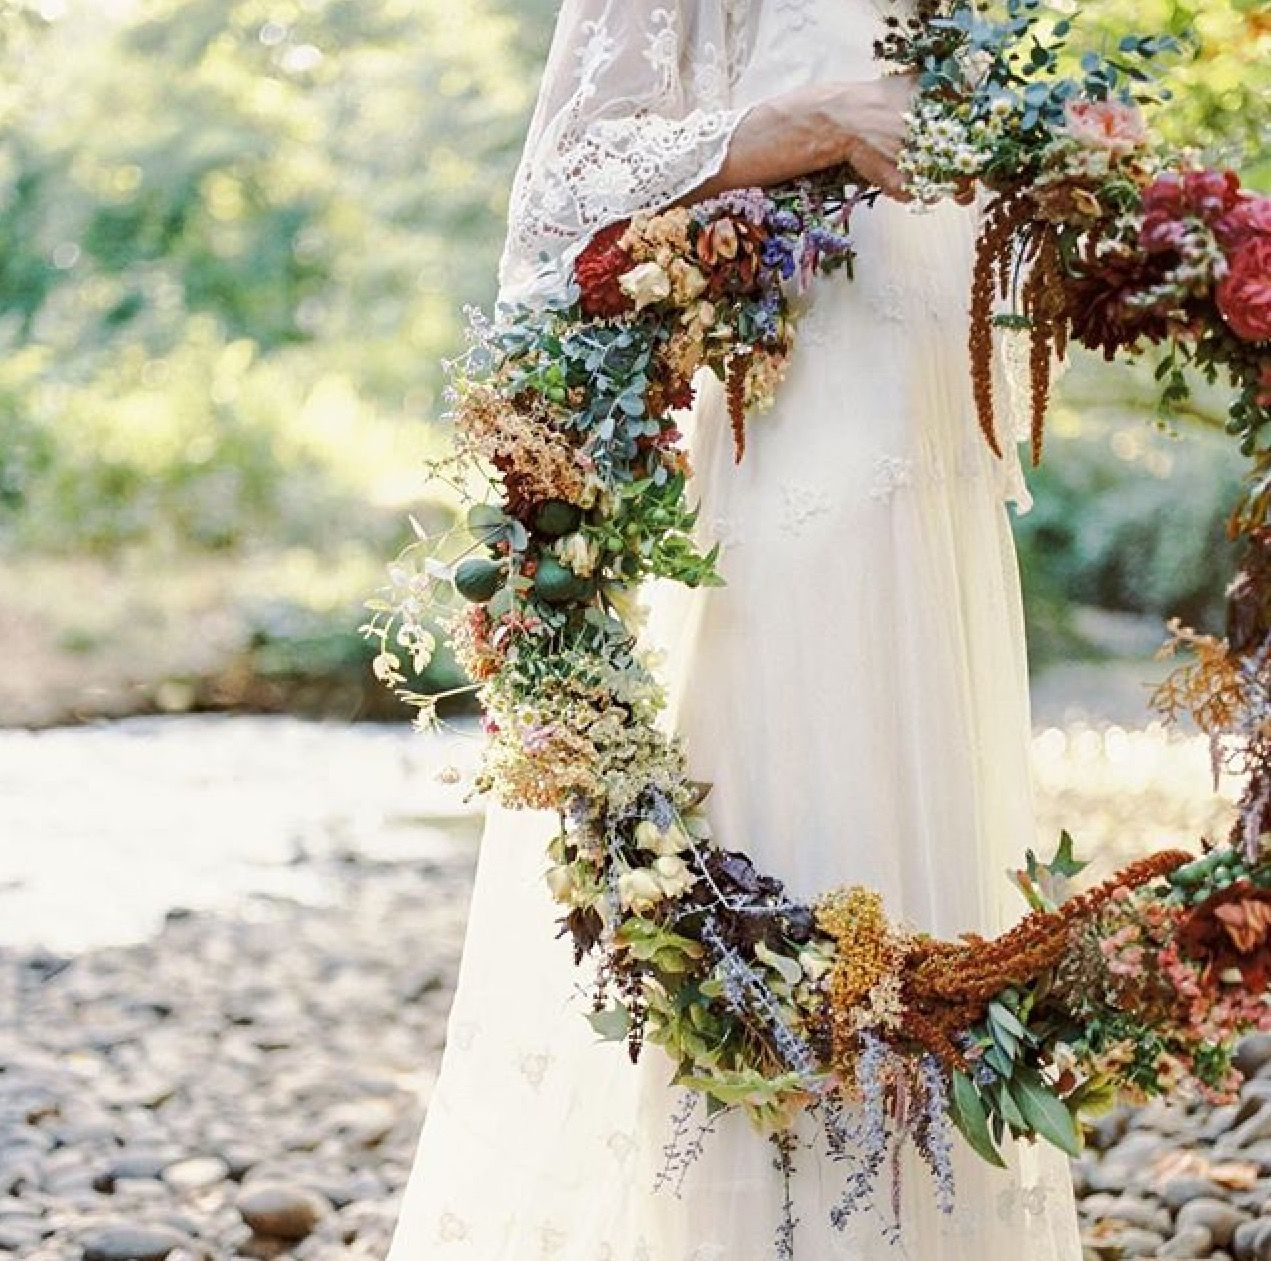 How utterly fabulous is this garland !! Boho meets rustic country ...